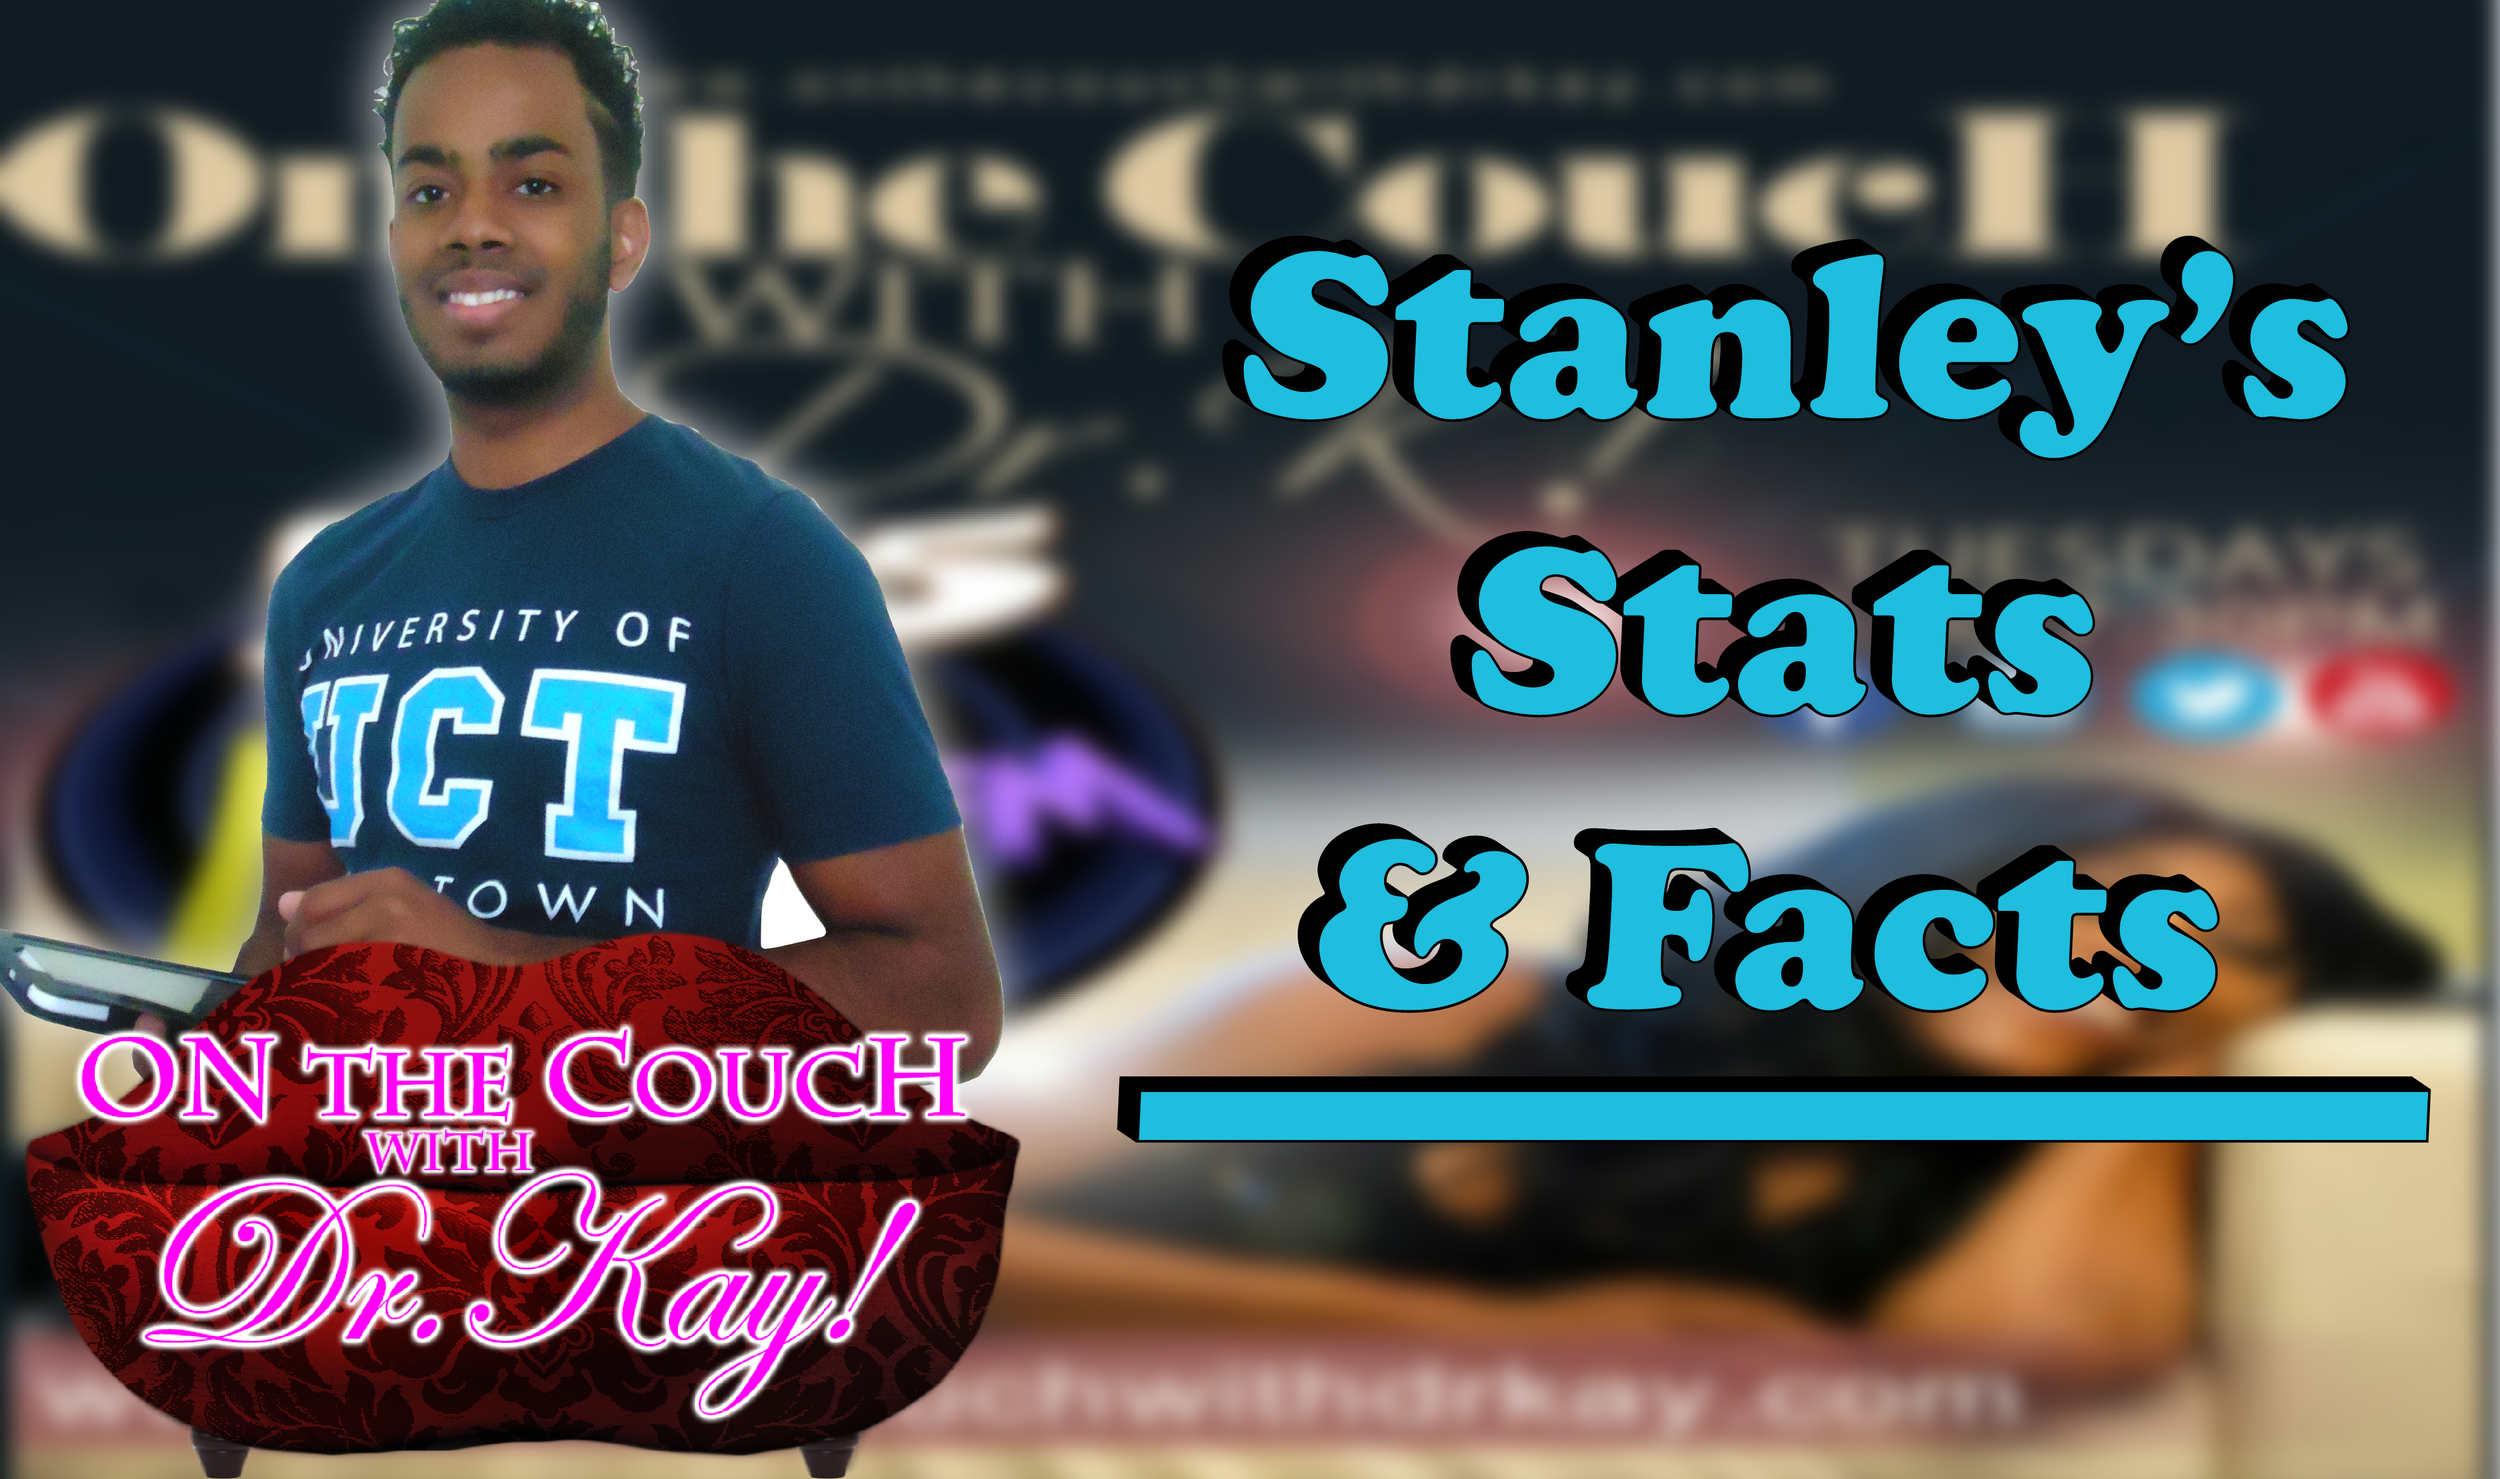 Stanley's Stats & Facts